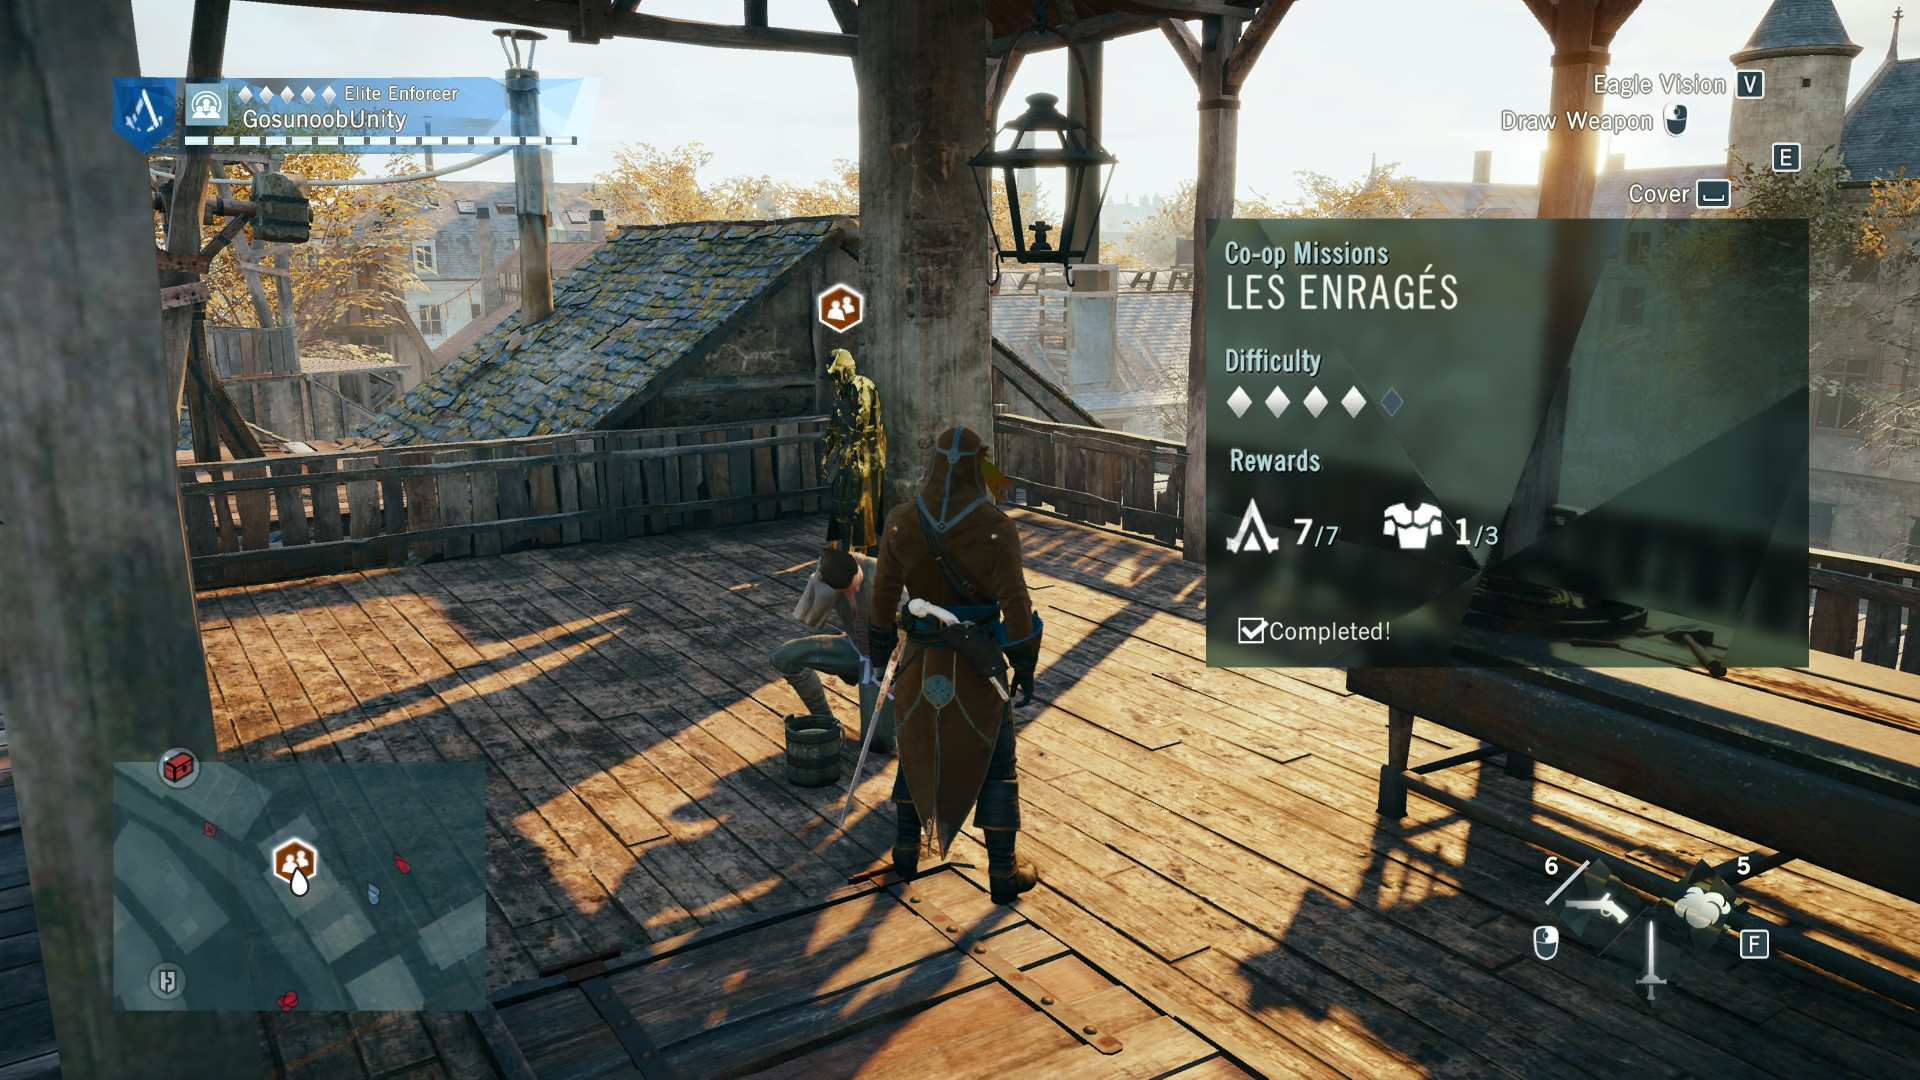 assassins creed unity missions